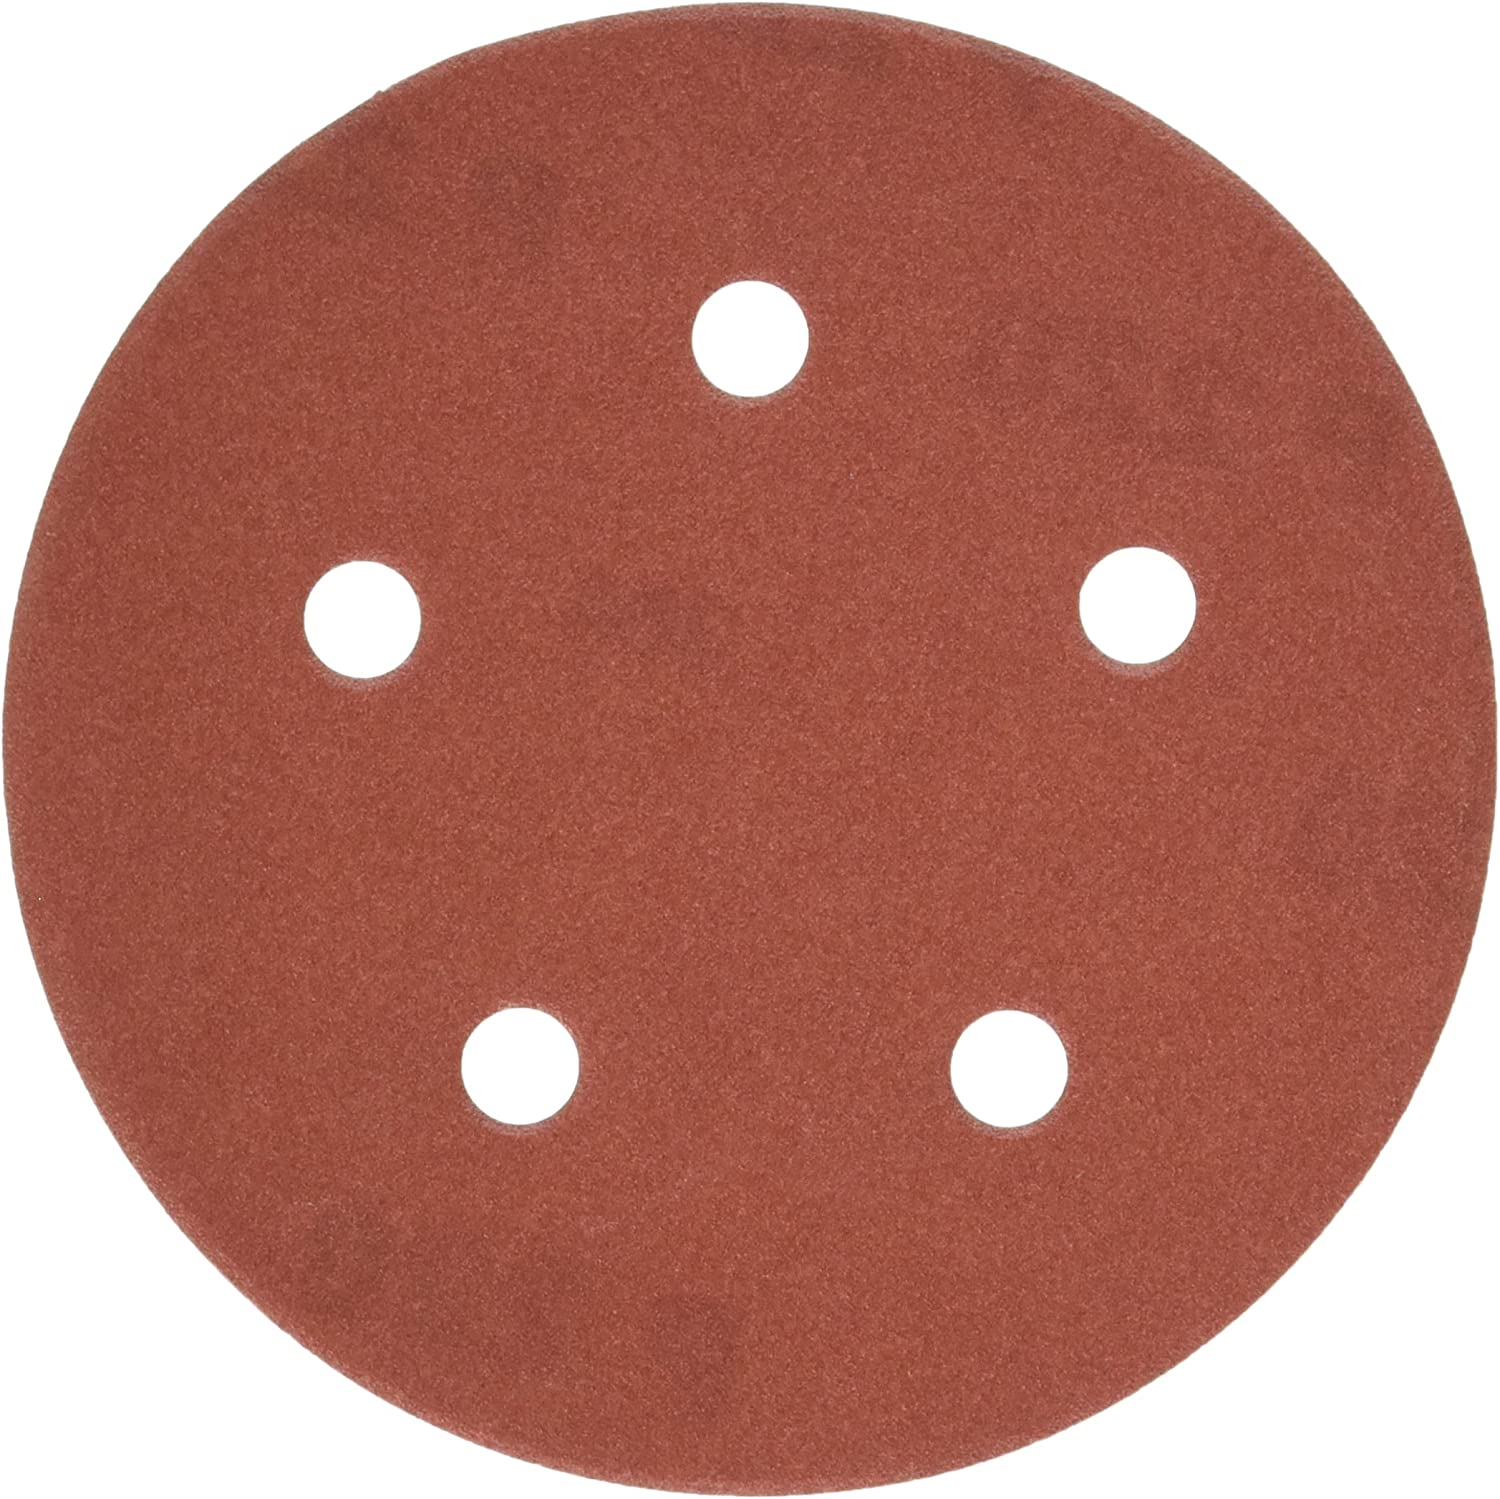 25-Pack PORTER-CABLE 735502225 5-Inch 5-Hole Hook and Loop 220 Grit Sanding Discs